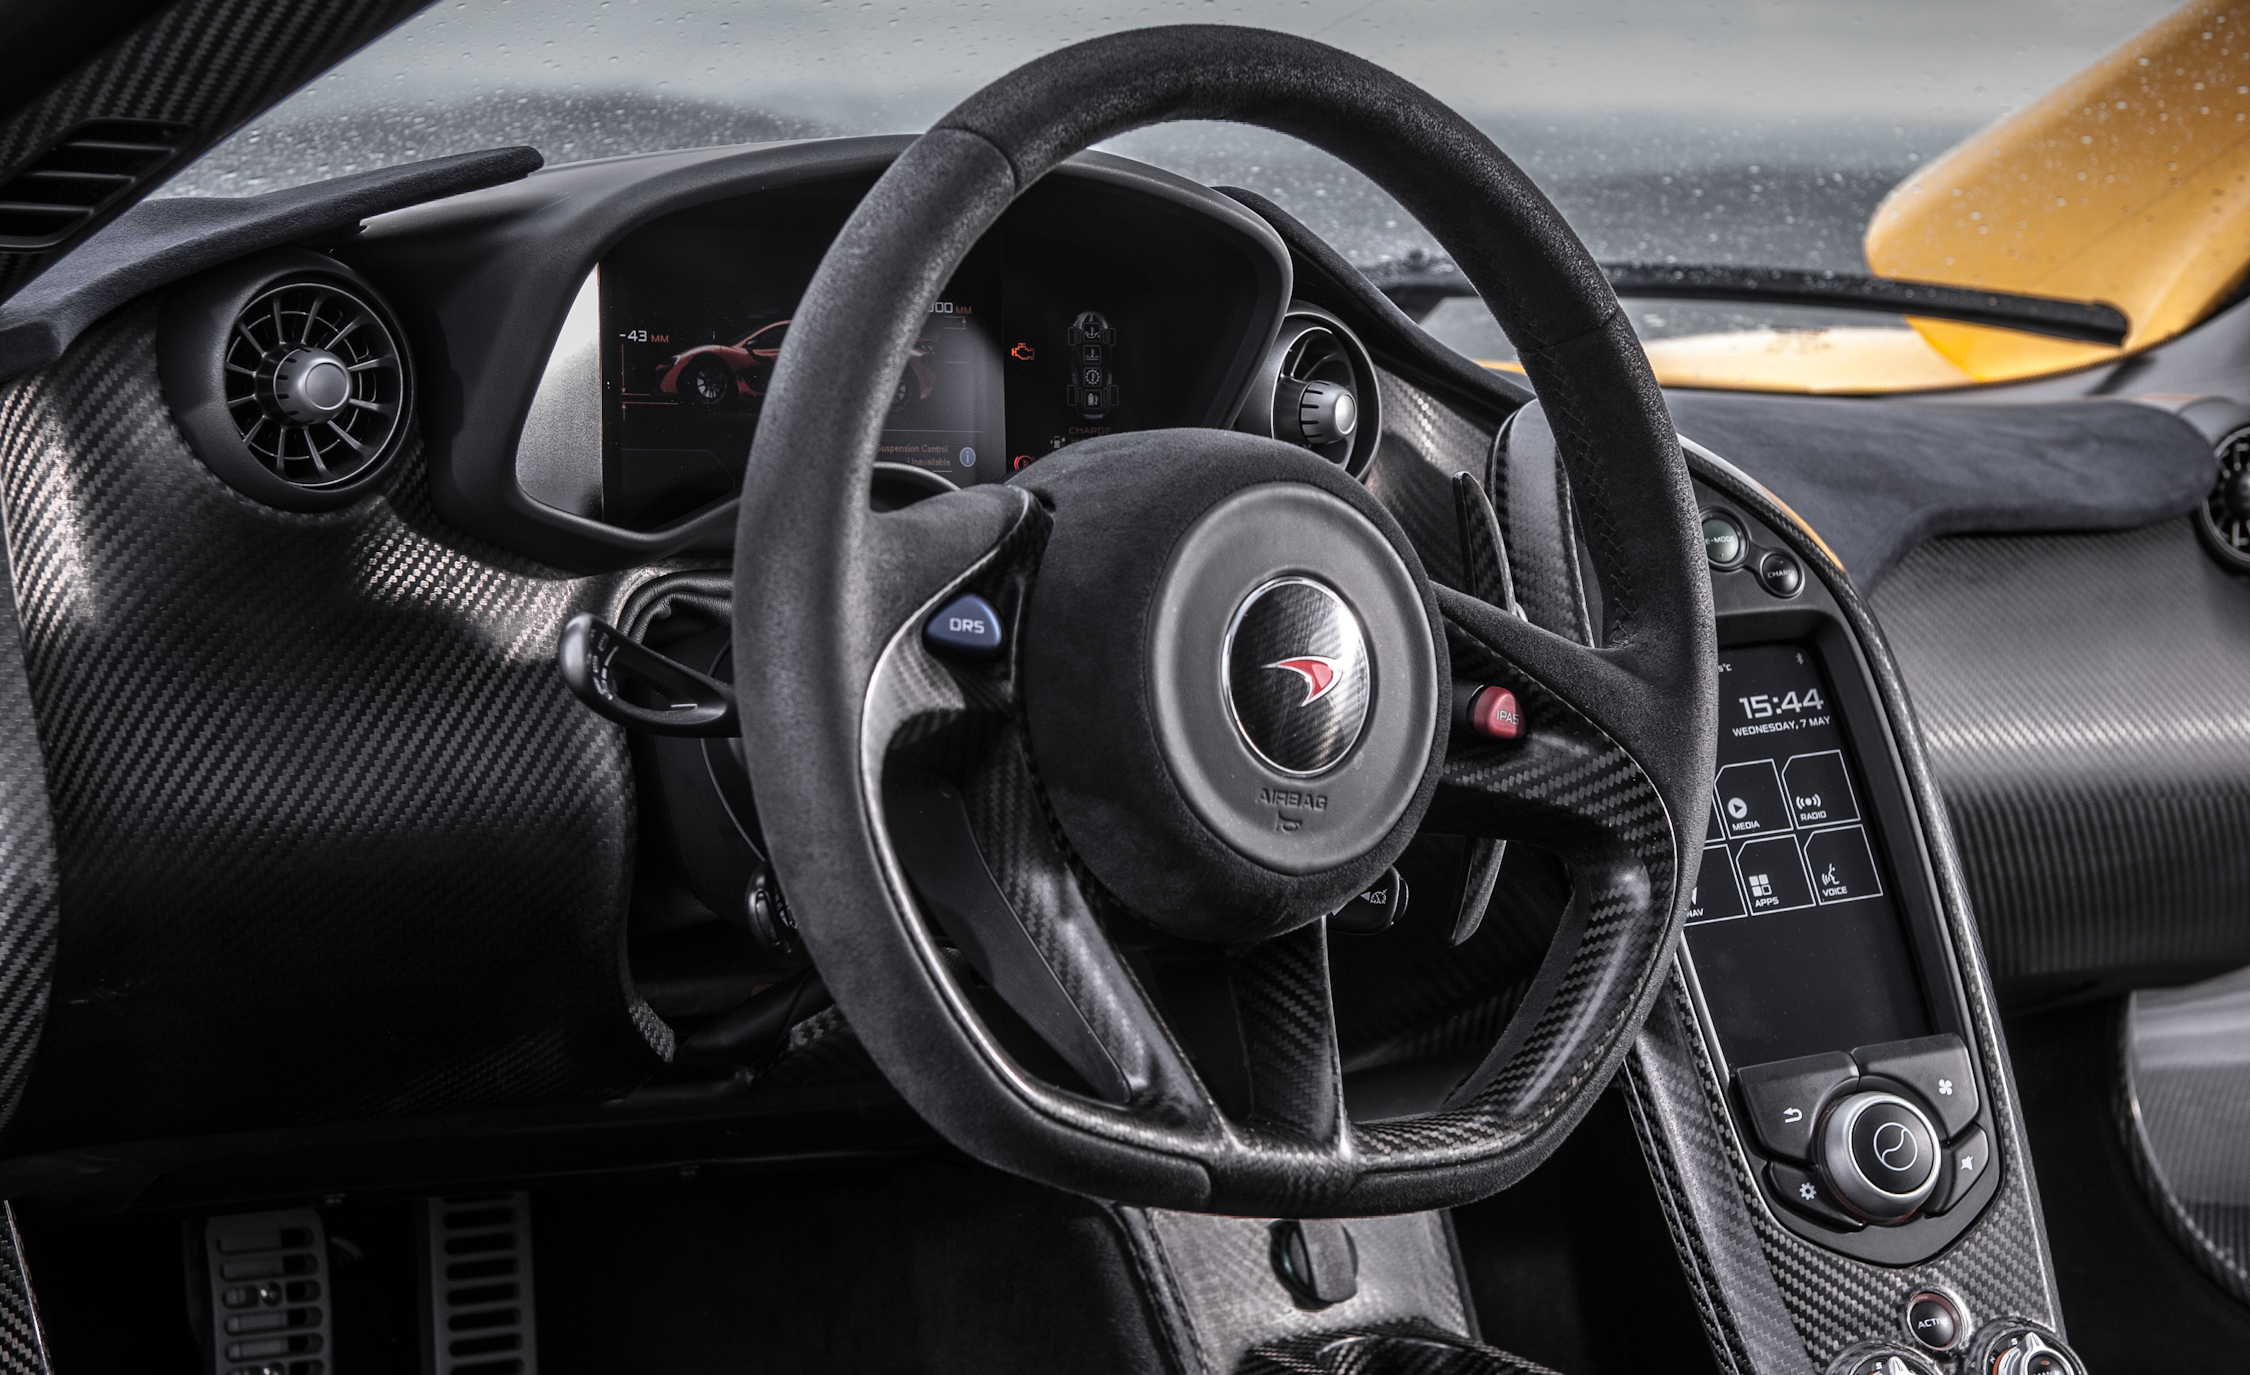 2014 McLaren P1 Interior (Photo 51 of 53)